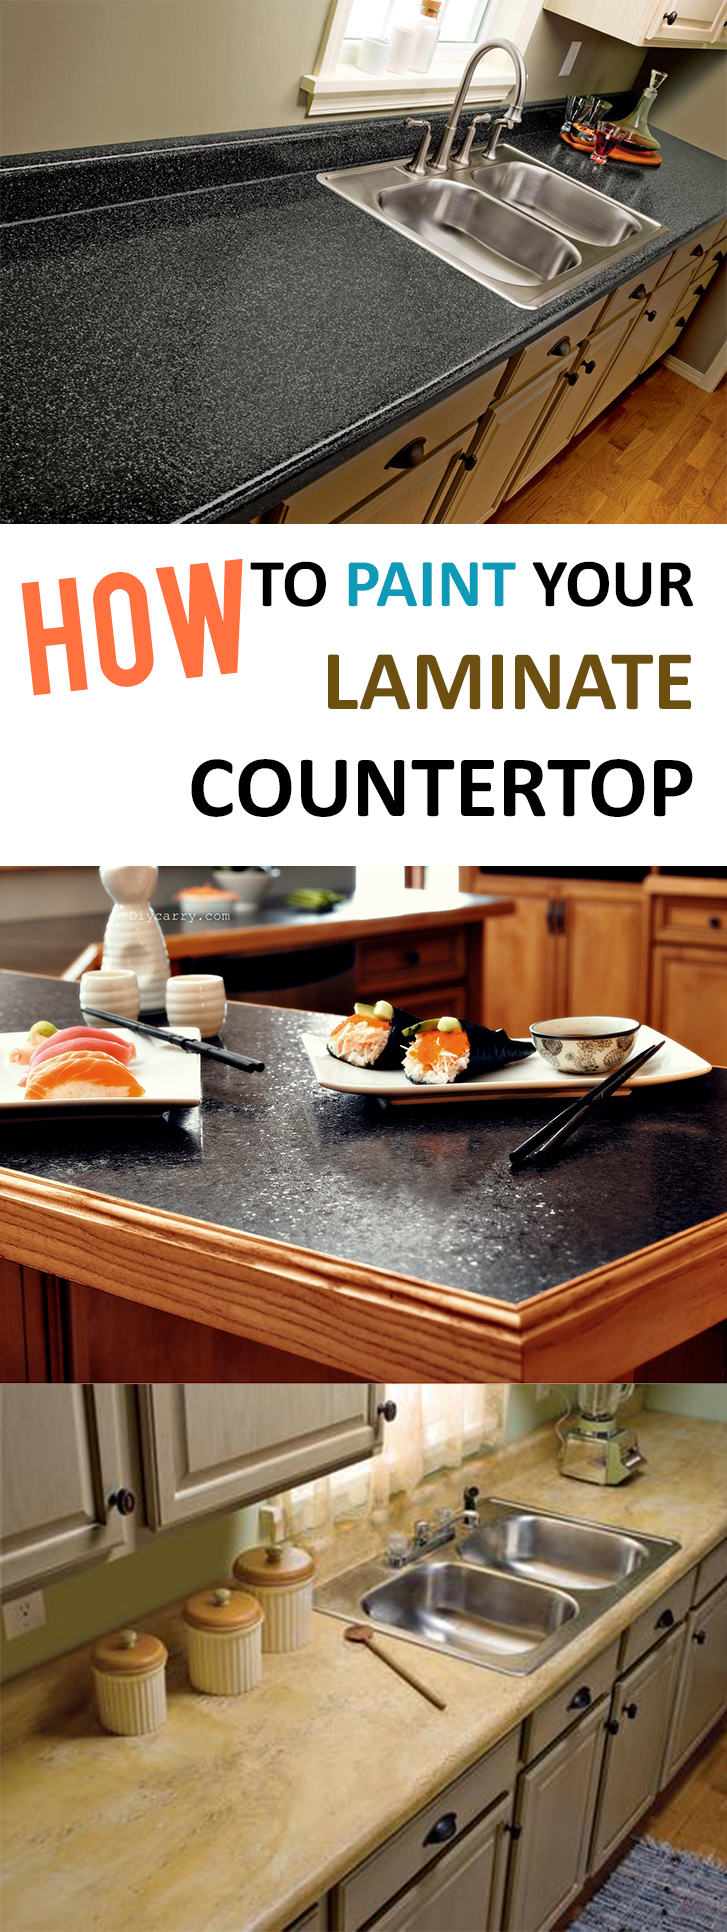 how to paint laminate countertop. Black Bedroom Furniture Sets. Home Design Ideas